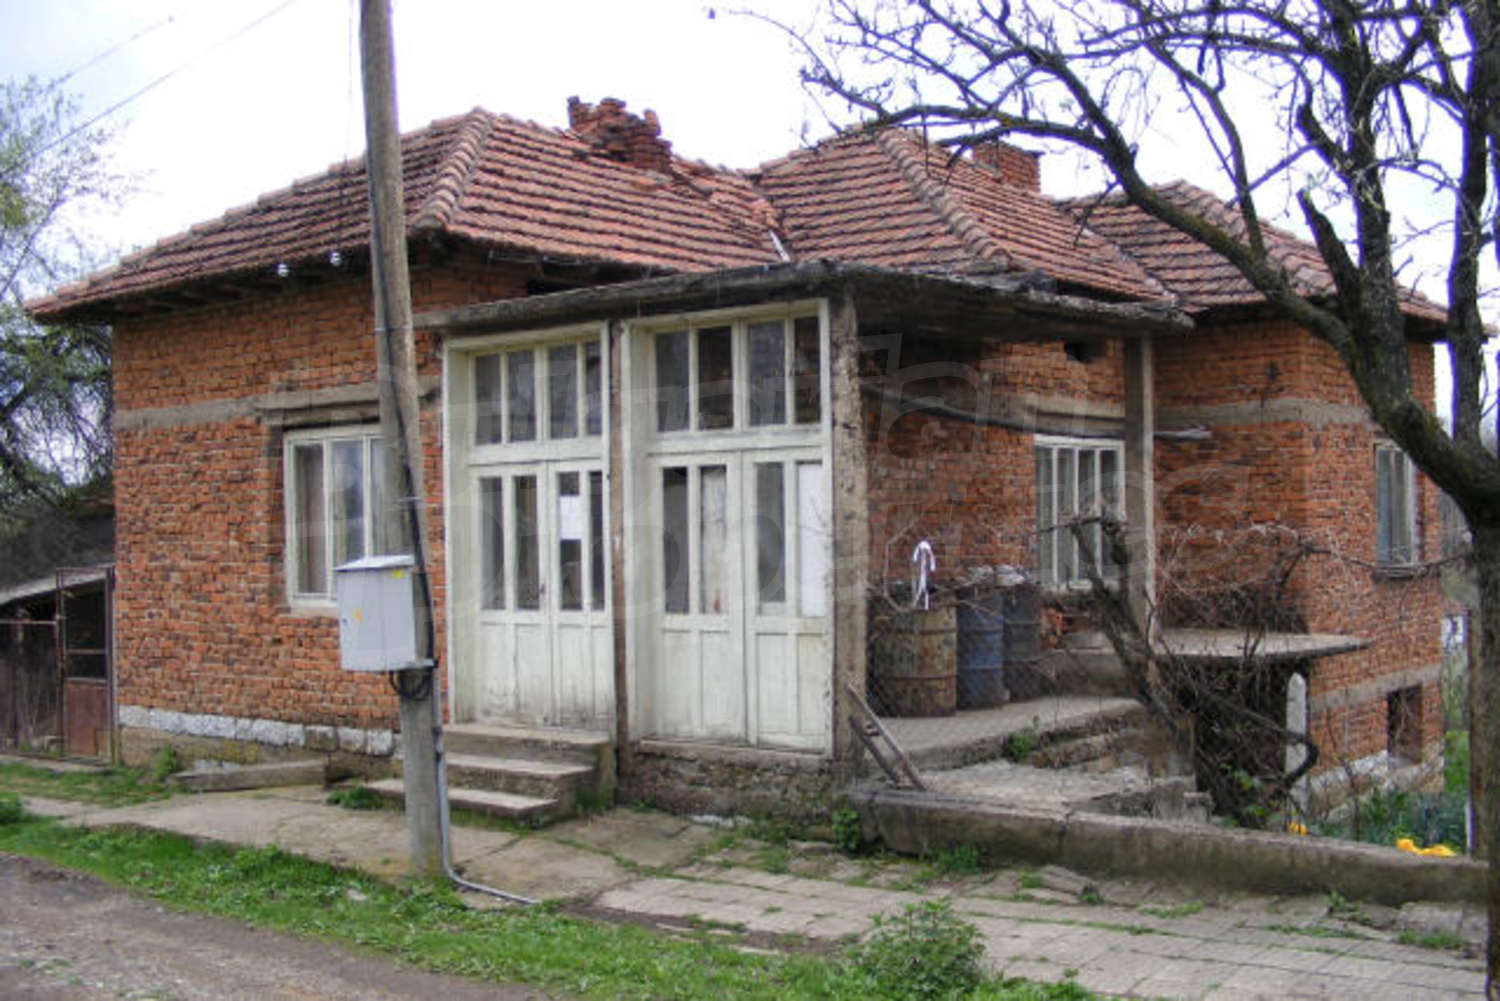 House for sale near montana bulgaria nice house with for Big nice houses for sale